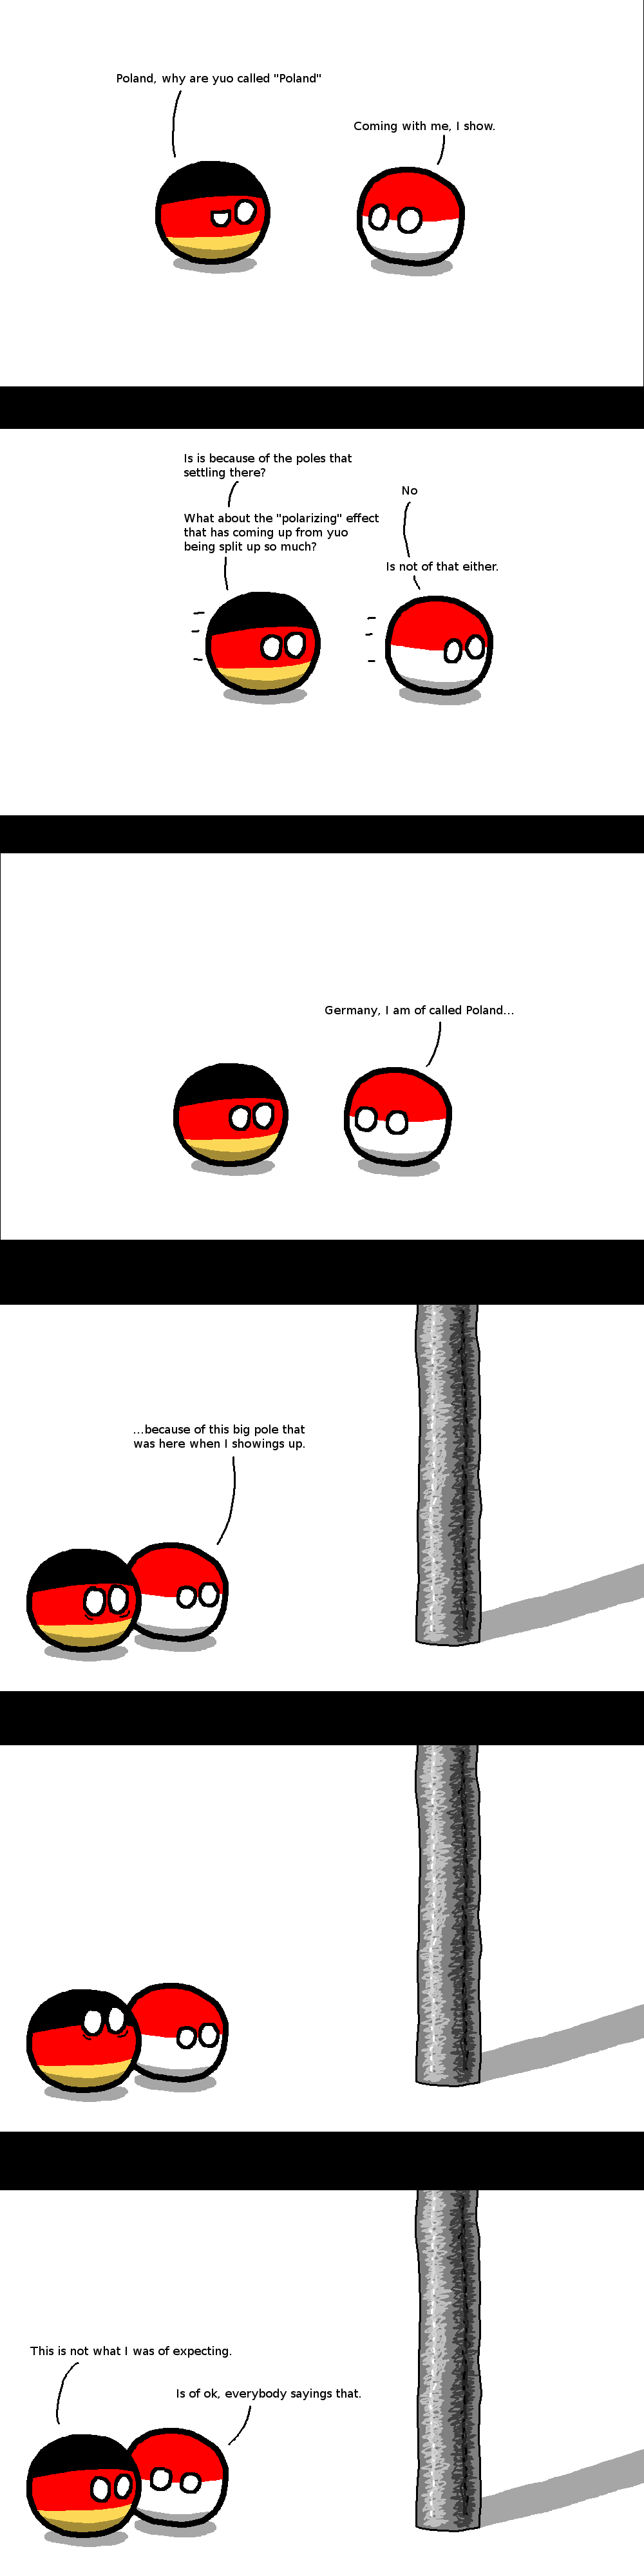 What Makes a Poland